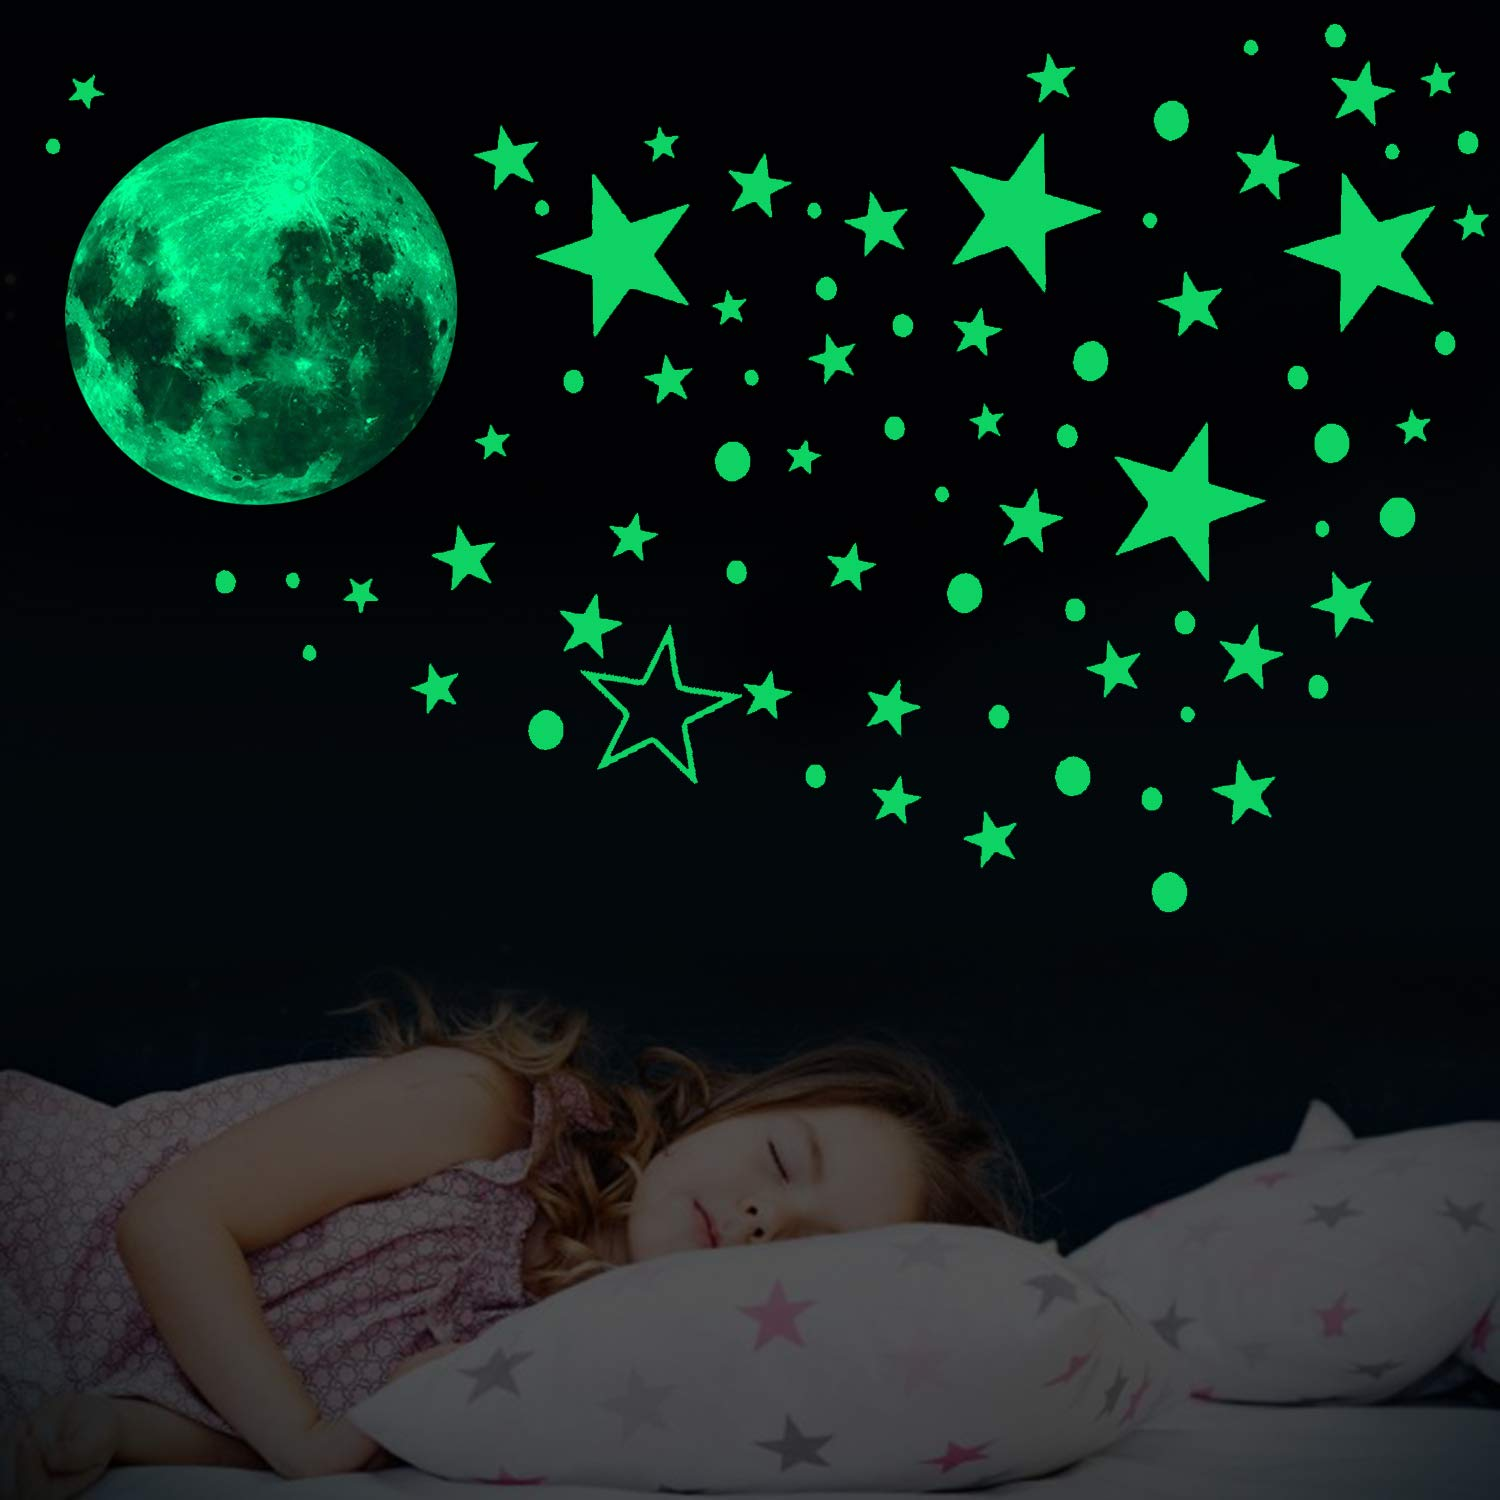 Hoiny Glow in The Dark Stars - Glow in The Dark Stickers 435 PCS Luminous Dots Stars and Moon Wall Stickers Glowing Stars for Celling for Children's Rooms,Baby,Children Bedroom